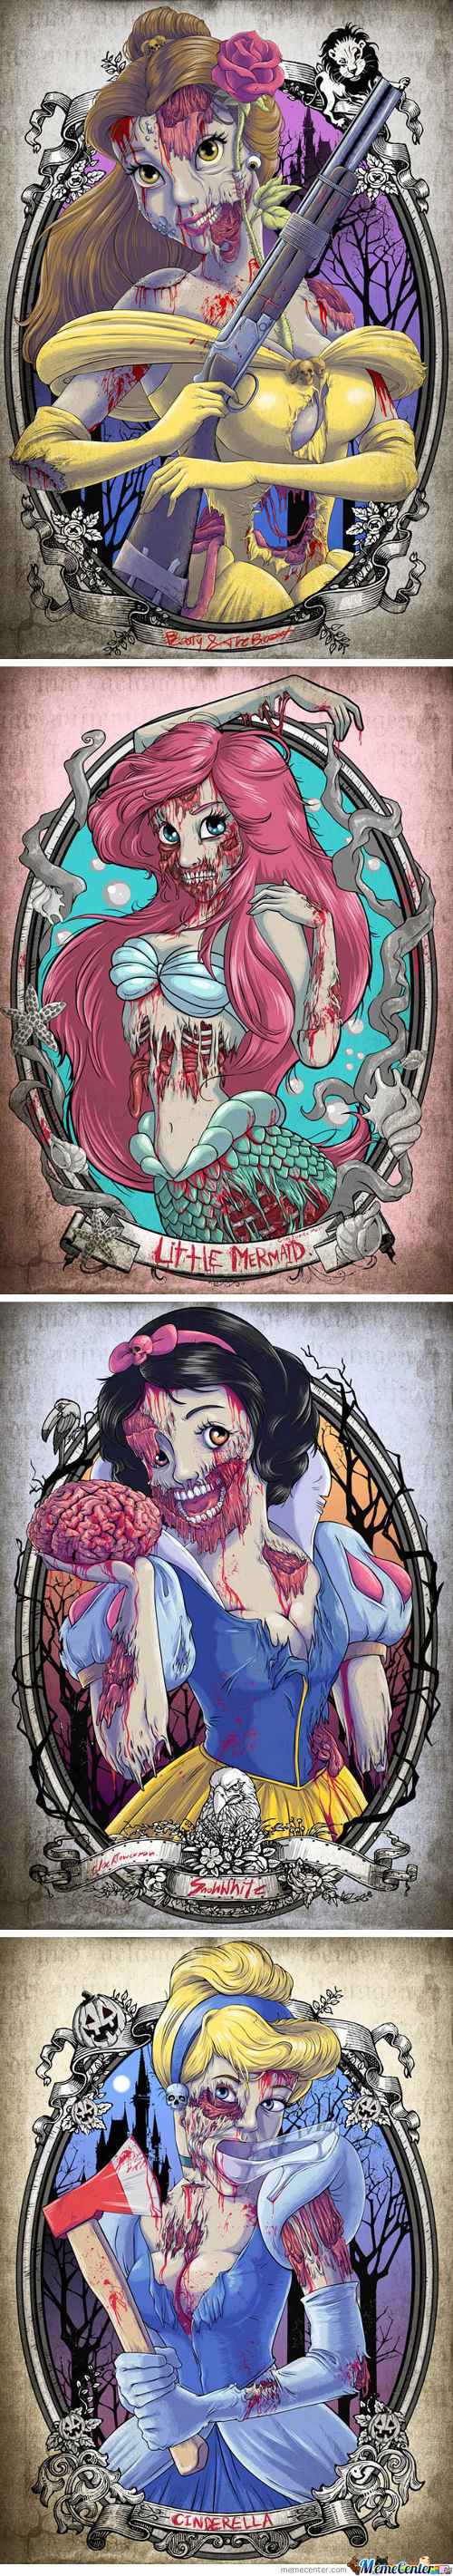 Undead Disney Princesses